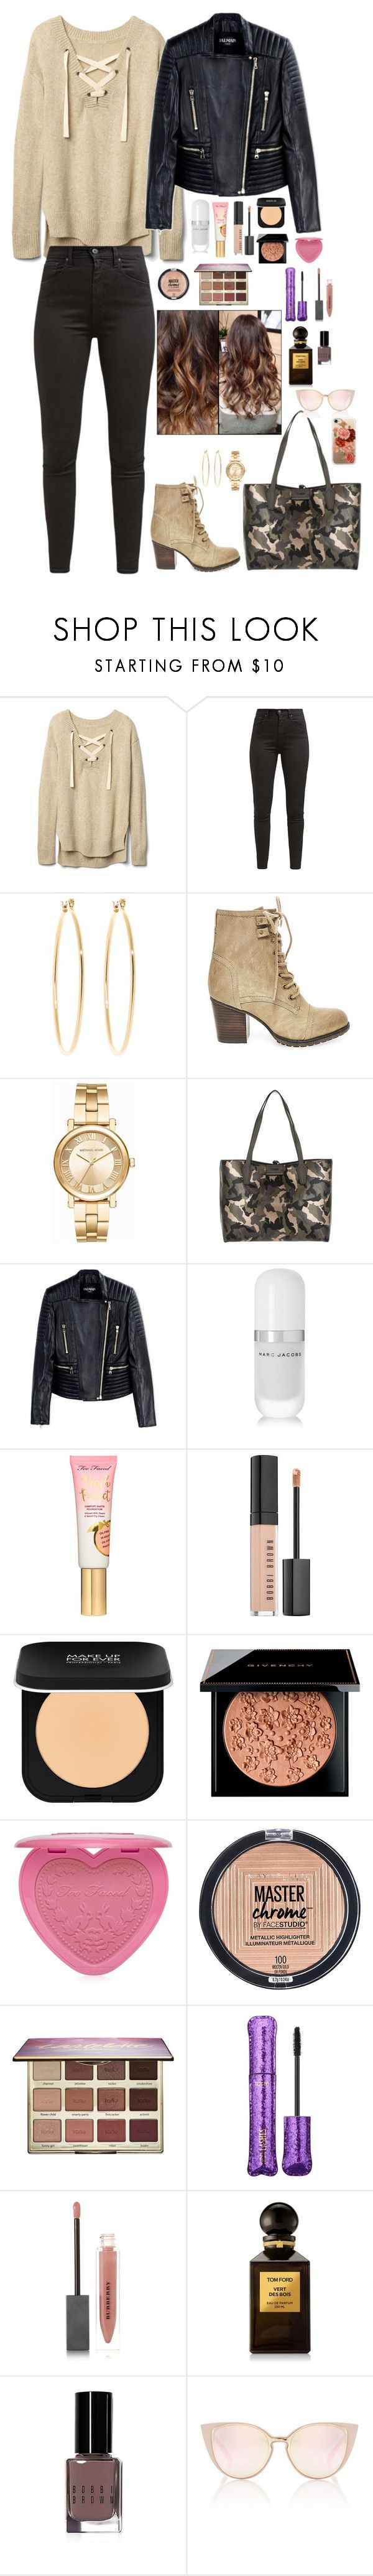 """Untitled #2081"" by azra-99 on Polyvore featuring Gap, Levi's, Brooks Brothers, Steve Madden, Michael Kors, GUESS, Balmain, Marc Jacobs, Bobbi Brown Cosmetics and MAKE UP FOR EVER"